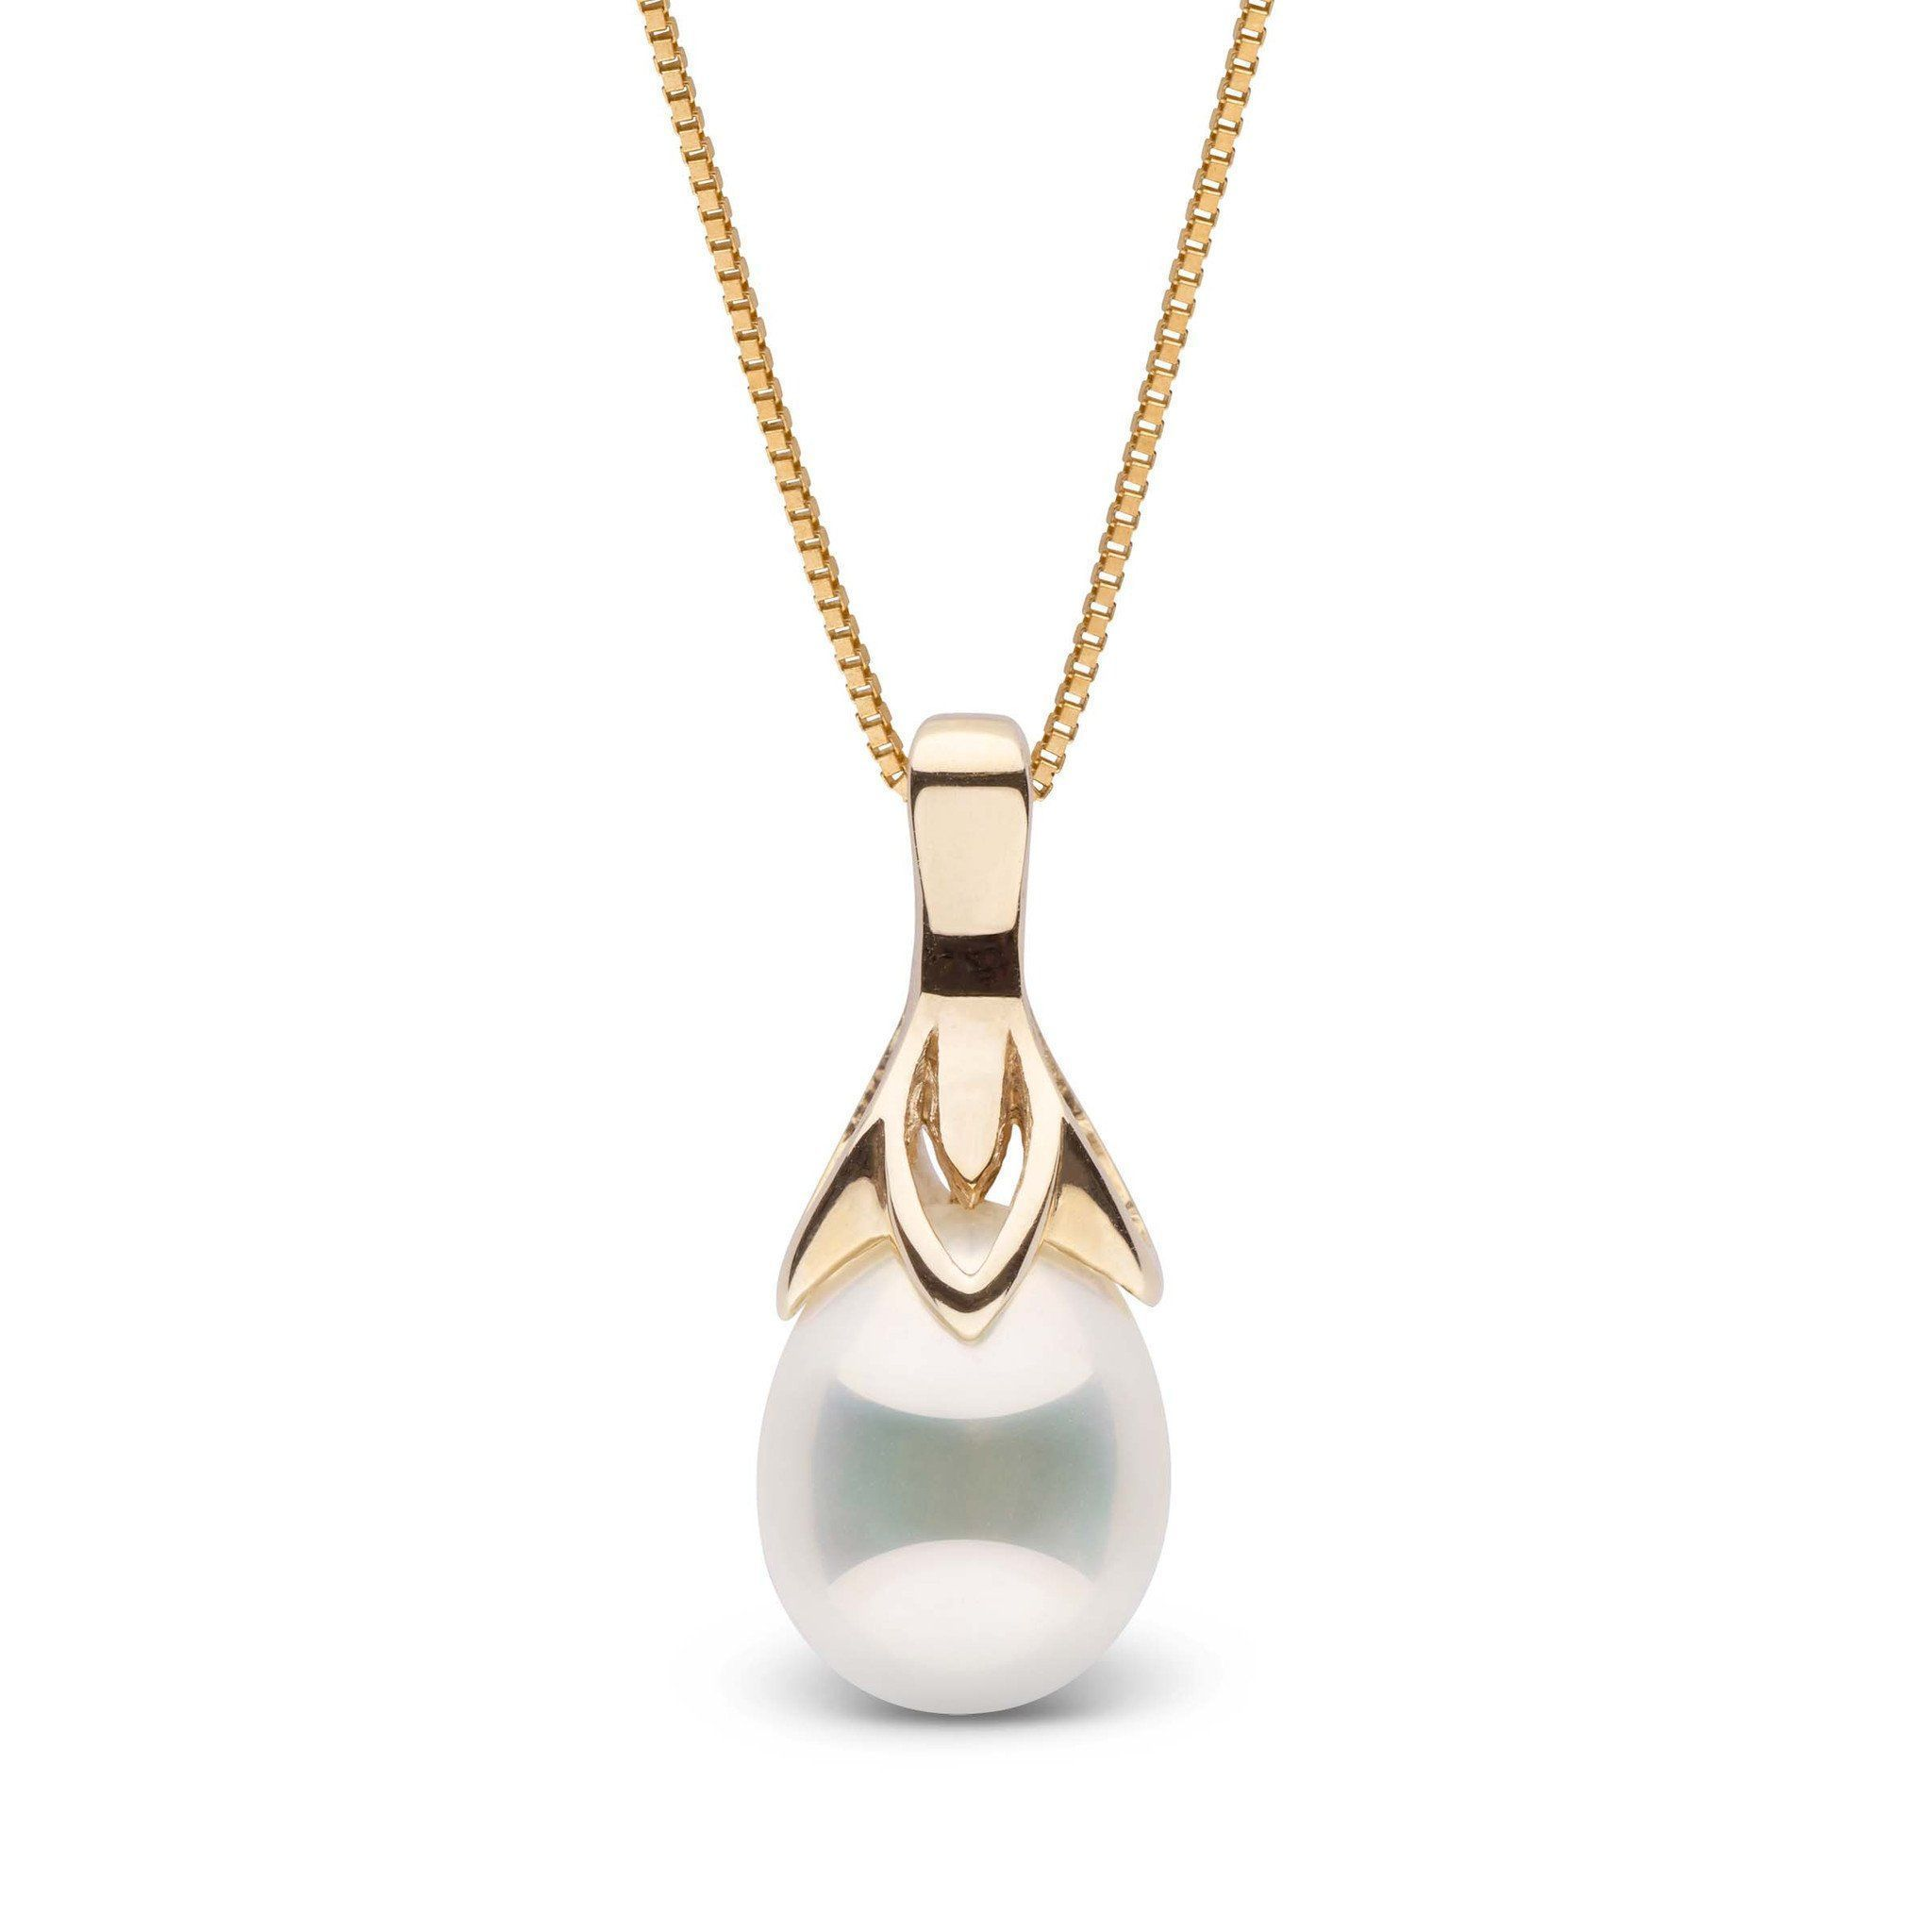 Snowdrop Collection White Metallic Freshwater Drop Pearl Pendant